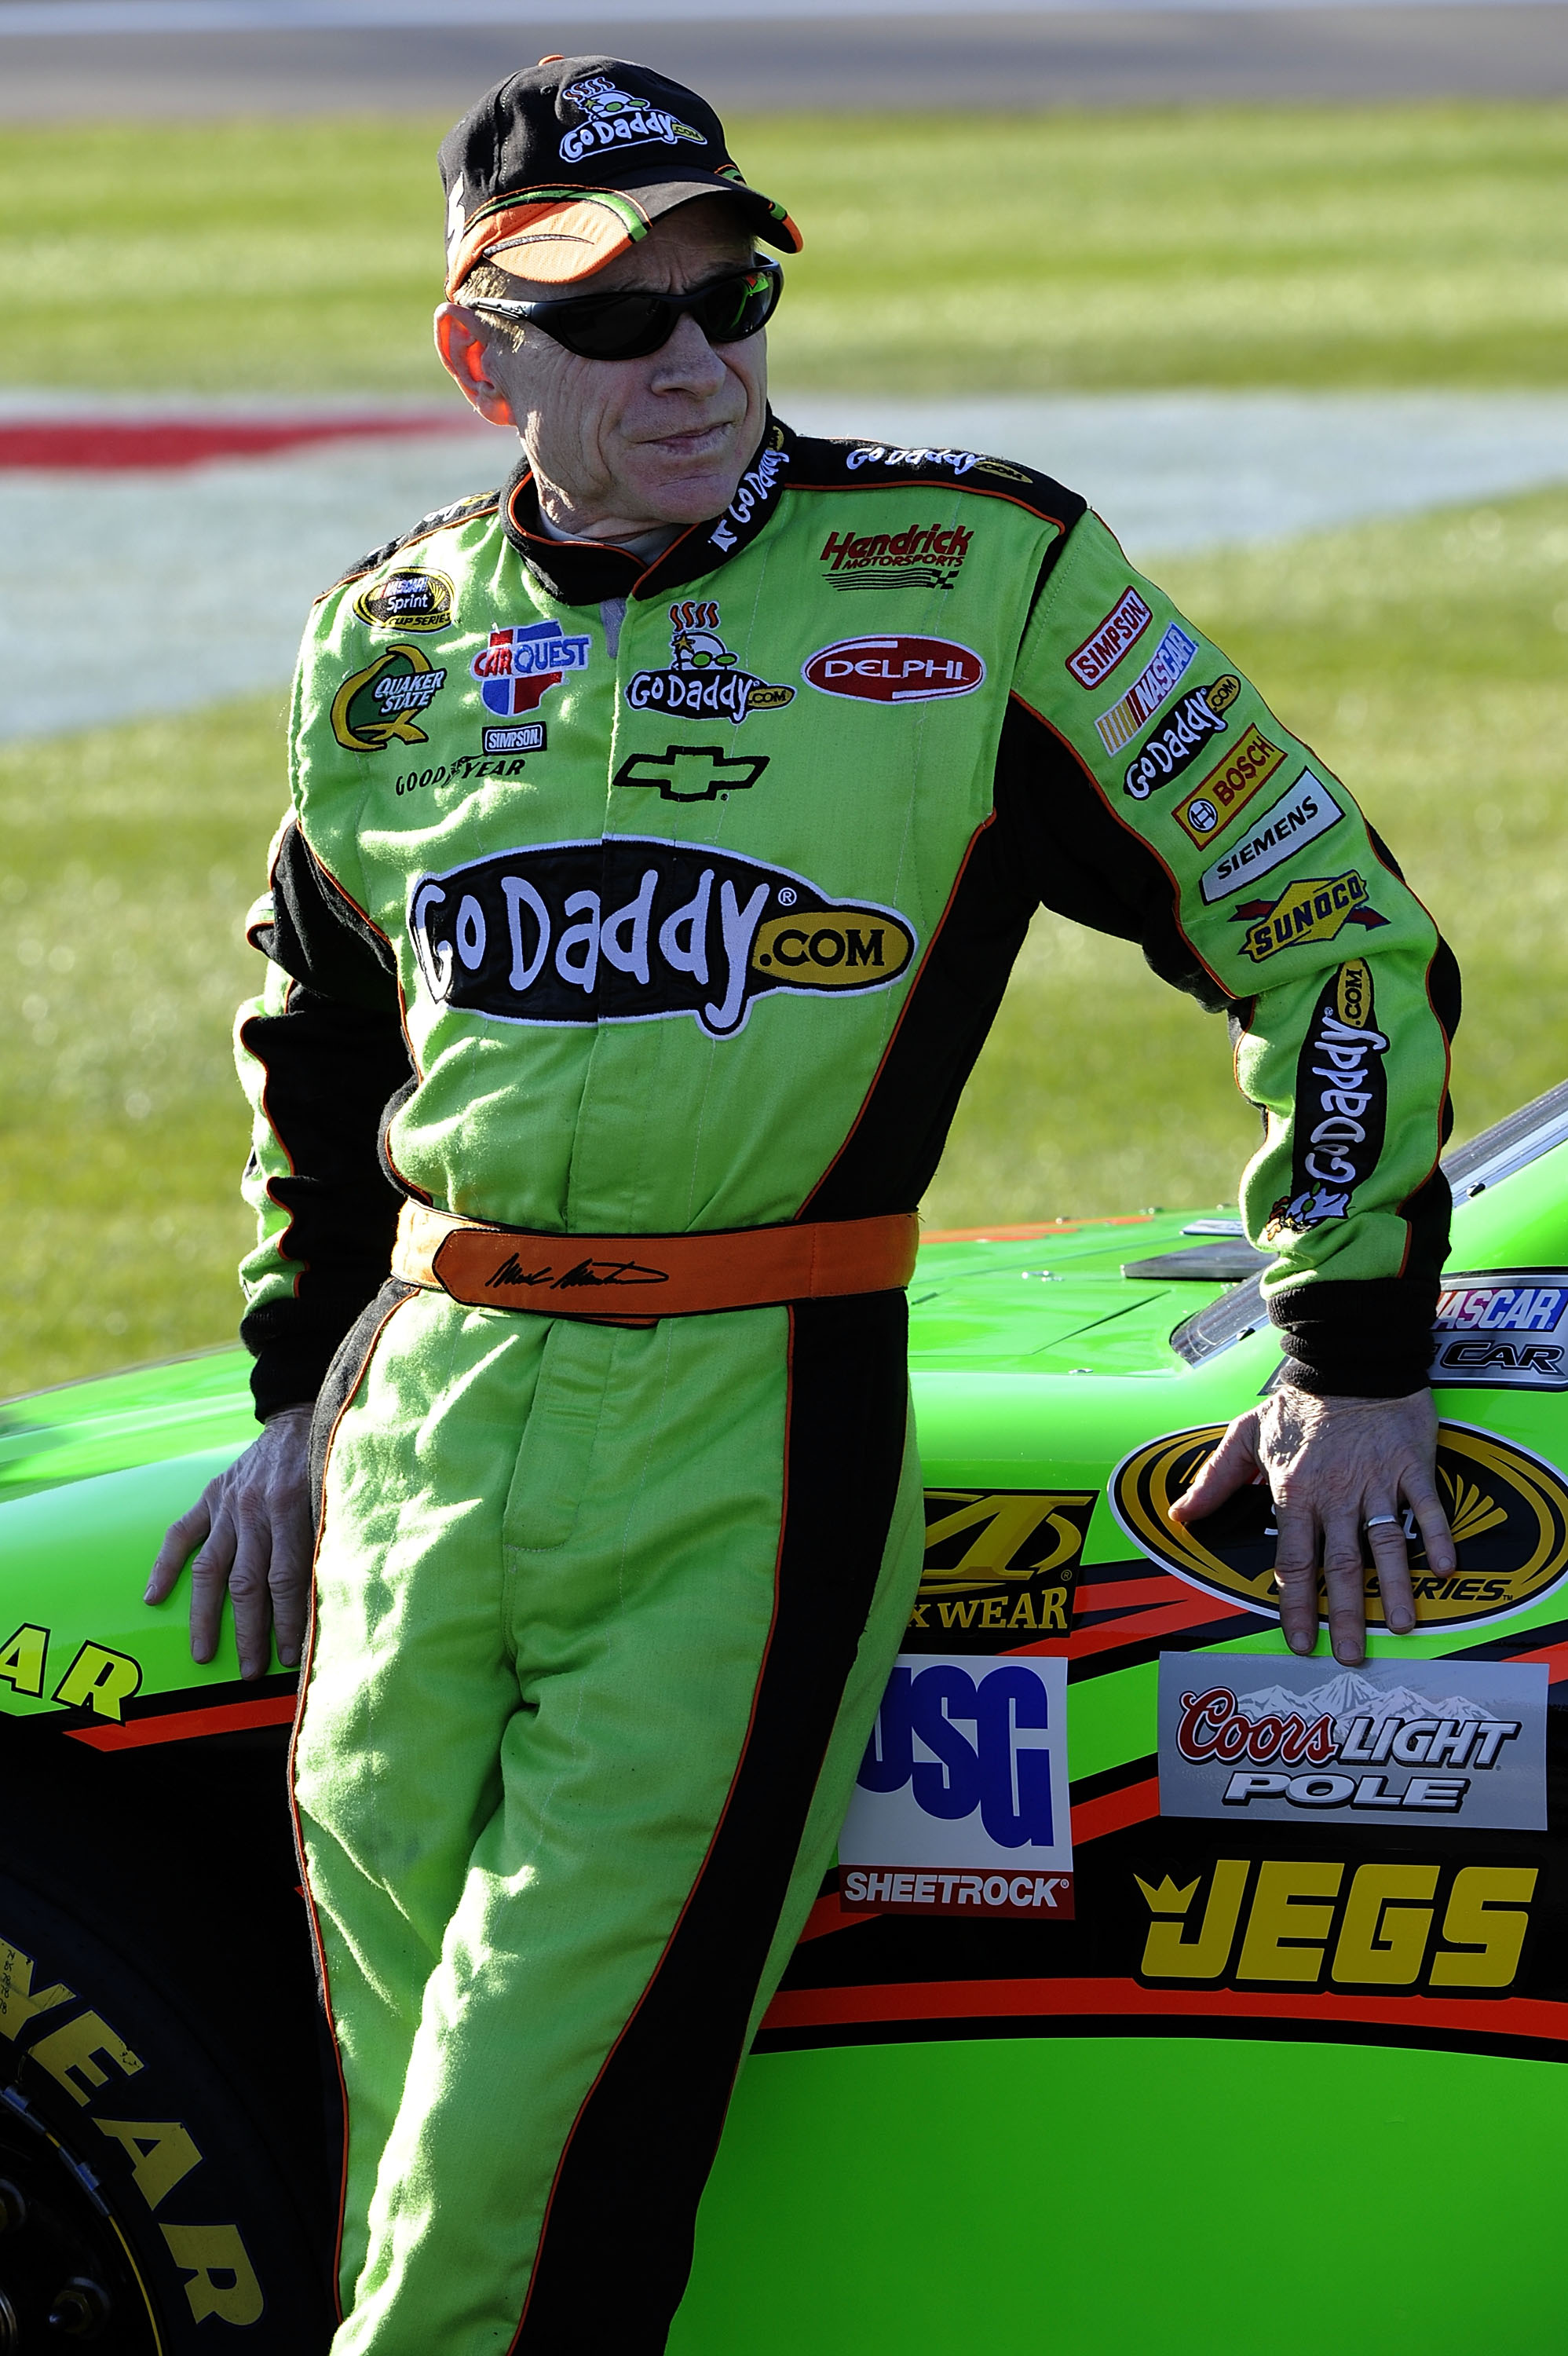 LAS VEGAS, NV - MARCH 04:  Mark Martin, driver of the #5 GoDaddy.com Chevrolet, leans on his car during qualifying for the NASCAR Sprint Cup Series Kobalt Tools 400 at Las Vegas Motor Speedway on March 4, 2011 in Las Vegas, Nevada.  (Photo by John Harrels